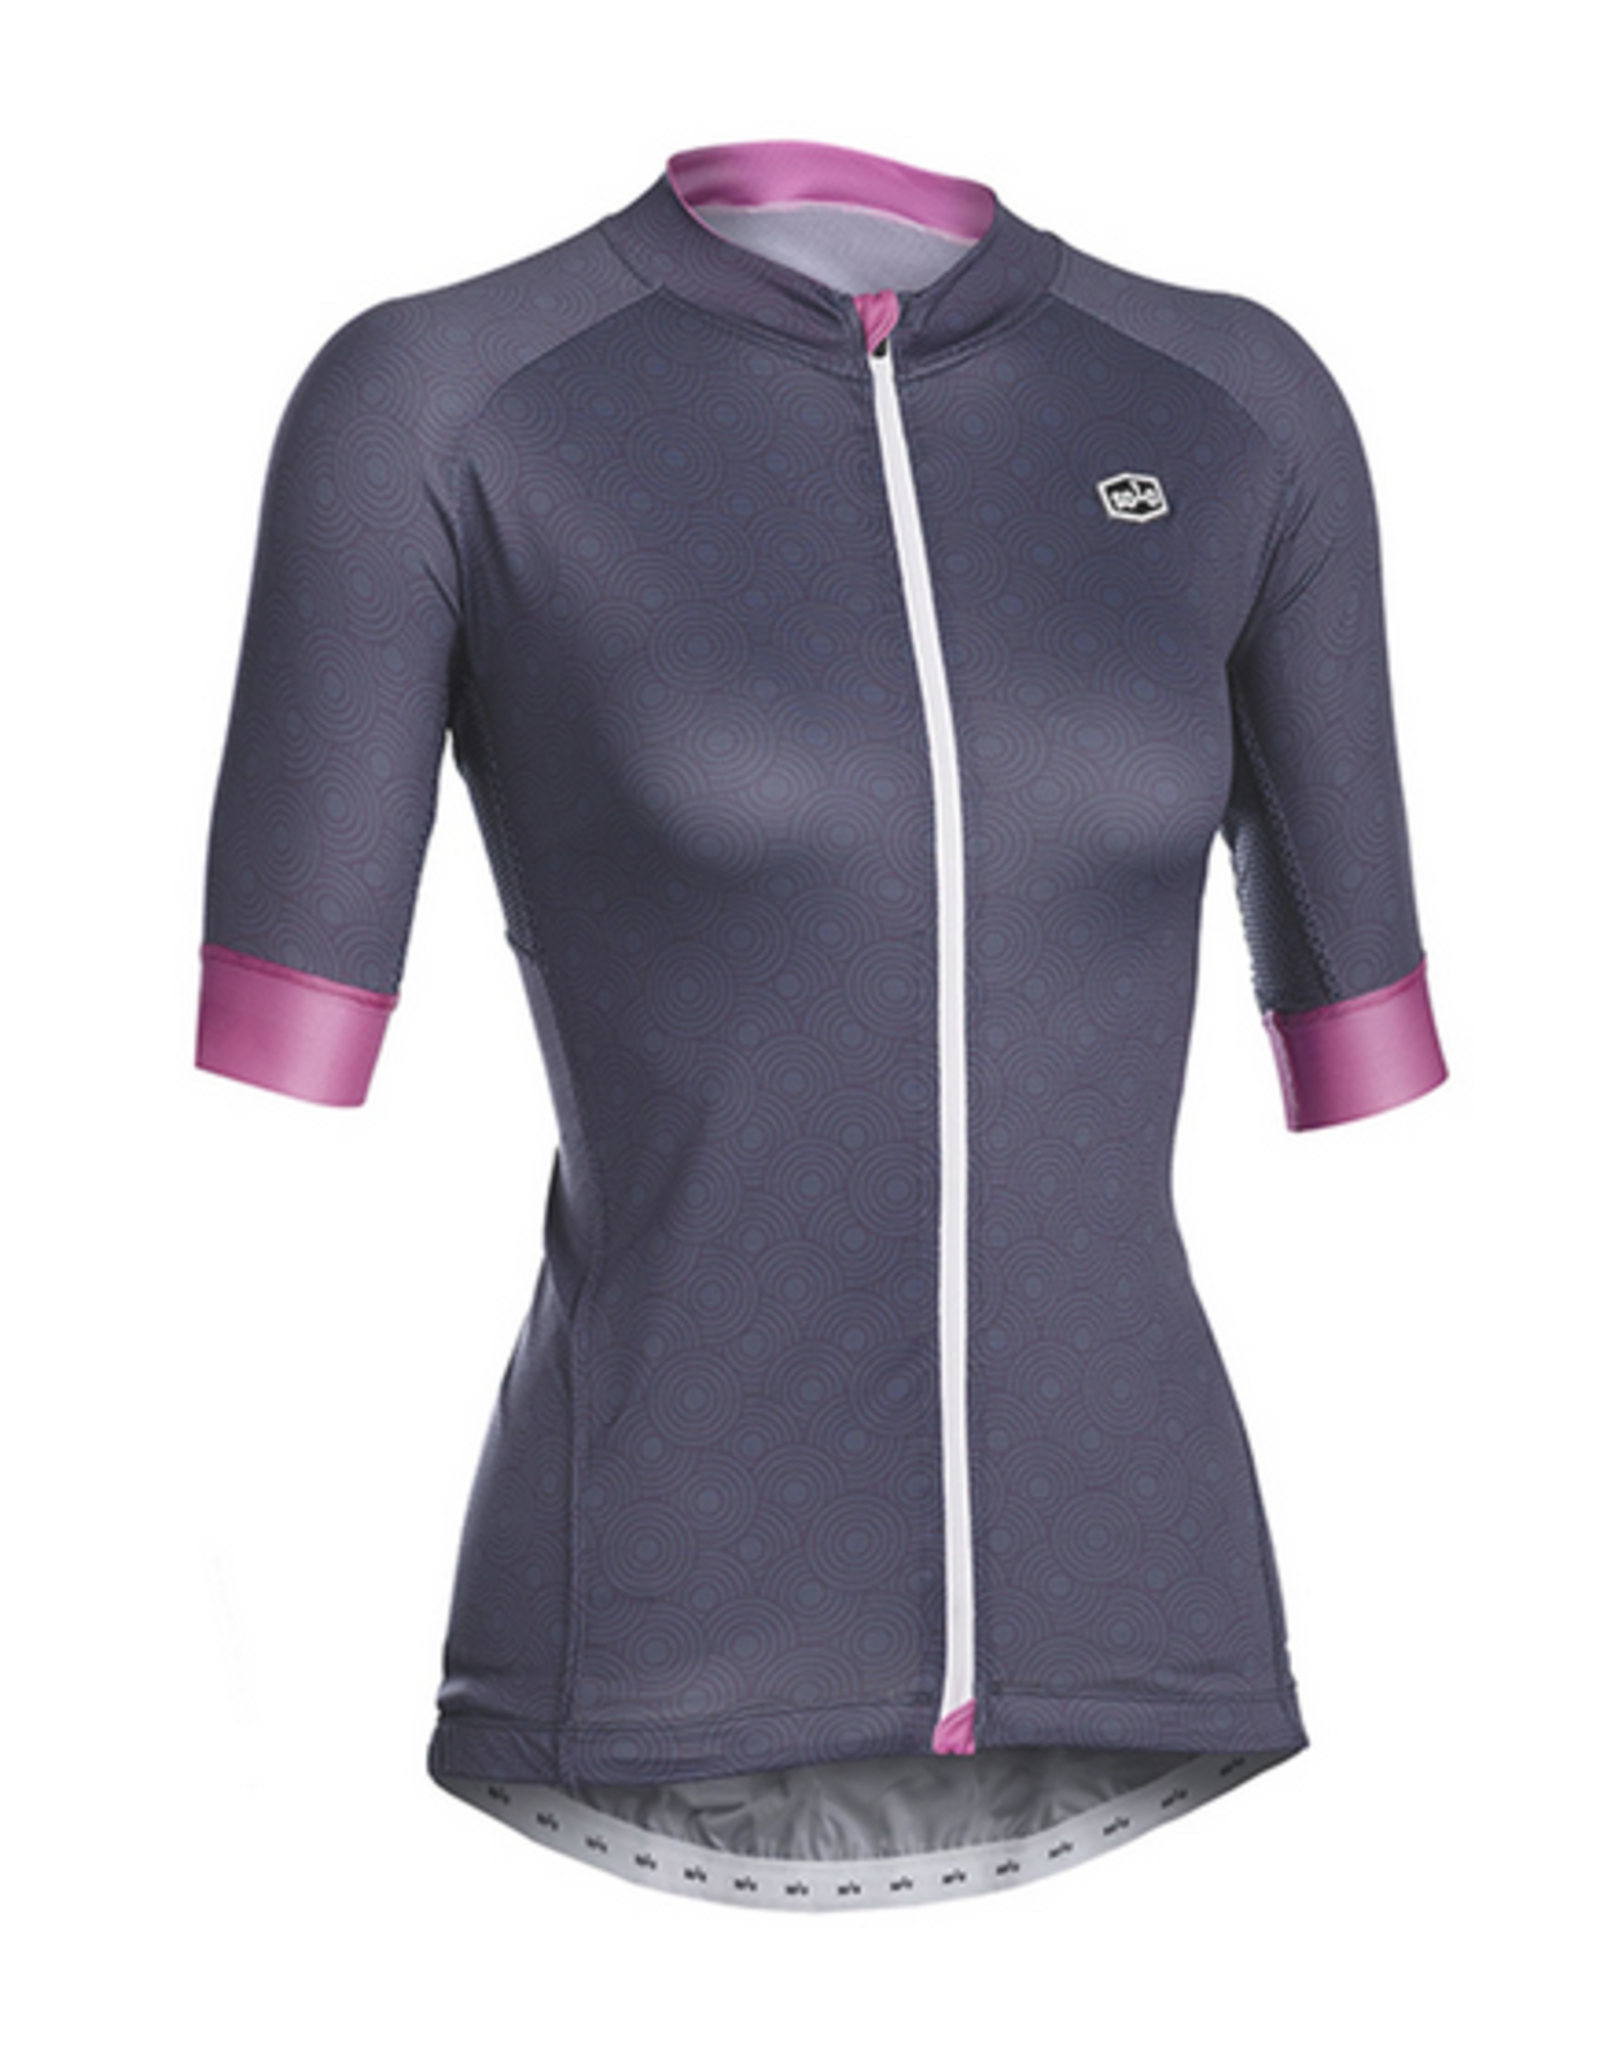 SOLO Solo Omni Woman Cycling Jersey Grey/Pink